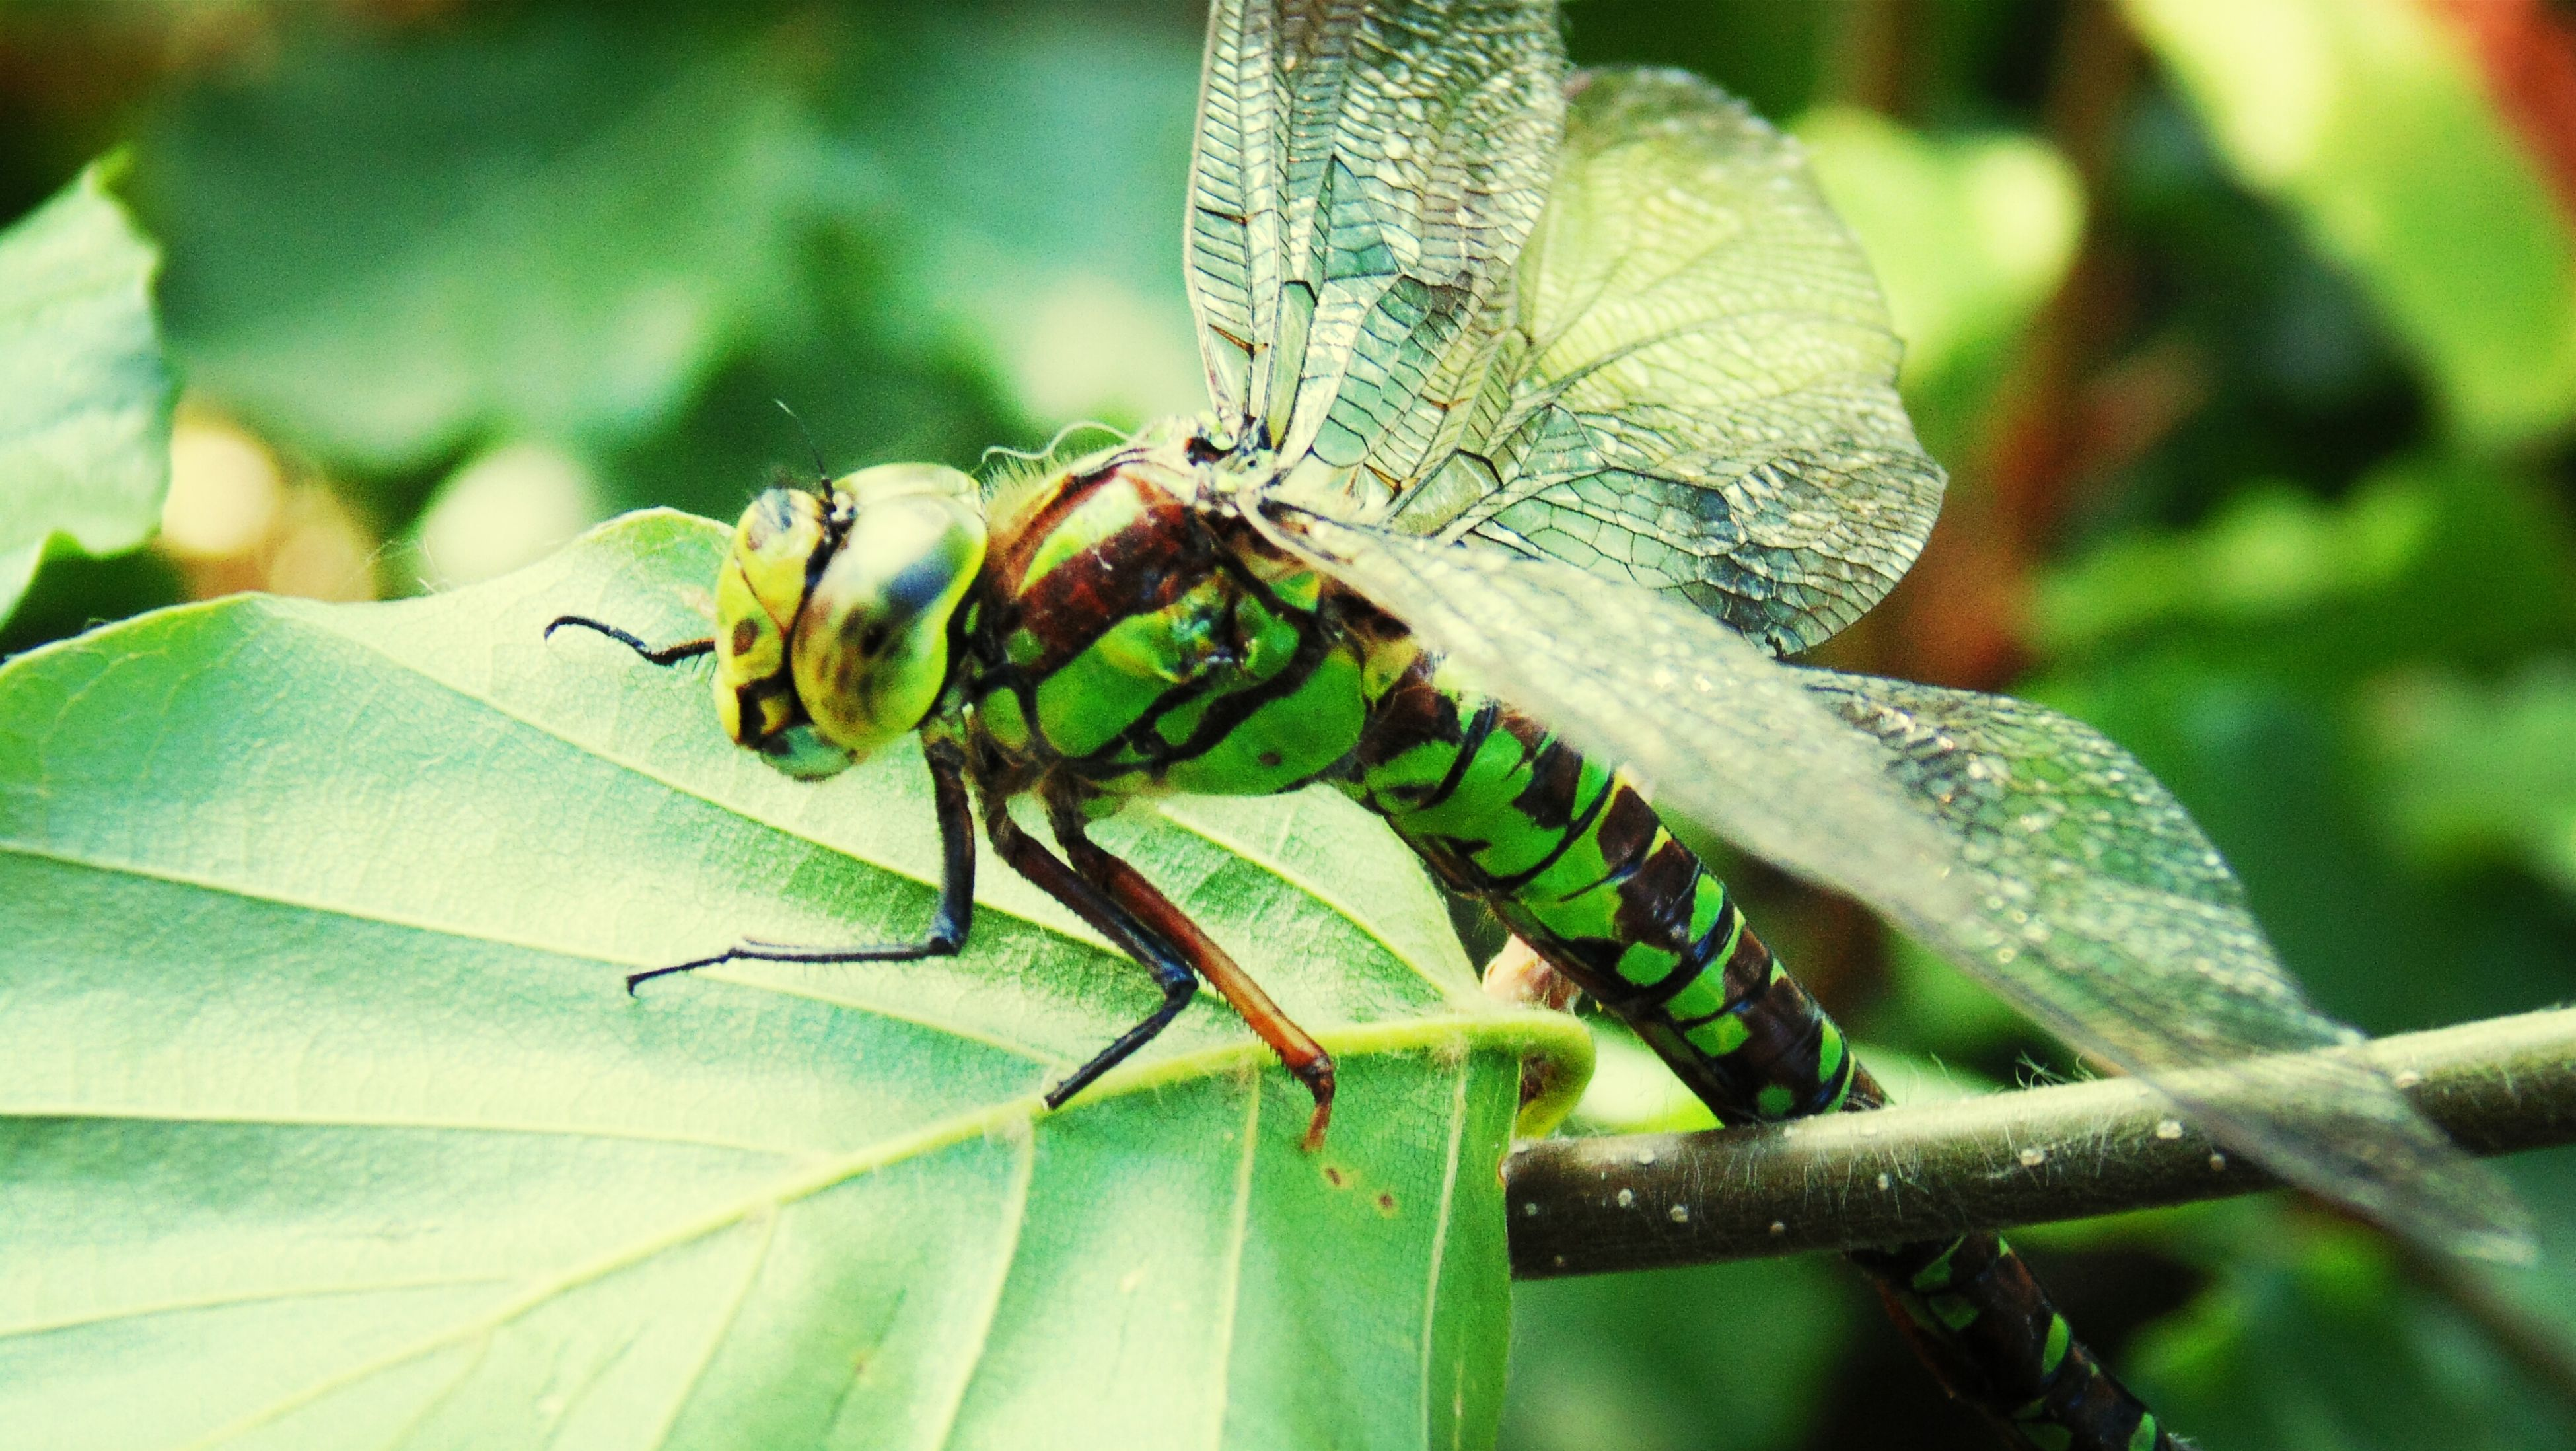 animal themes, one animal, animals in the wild, insect, wildlife, close-up, focus on foreground, leaf, nature, plant, animal antenna, green color, day, outdoors, dragonfly, selective focus, no people, growth, sunlight, natural pattern